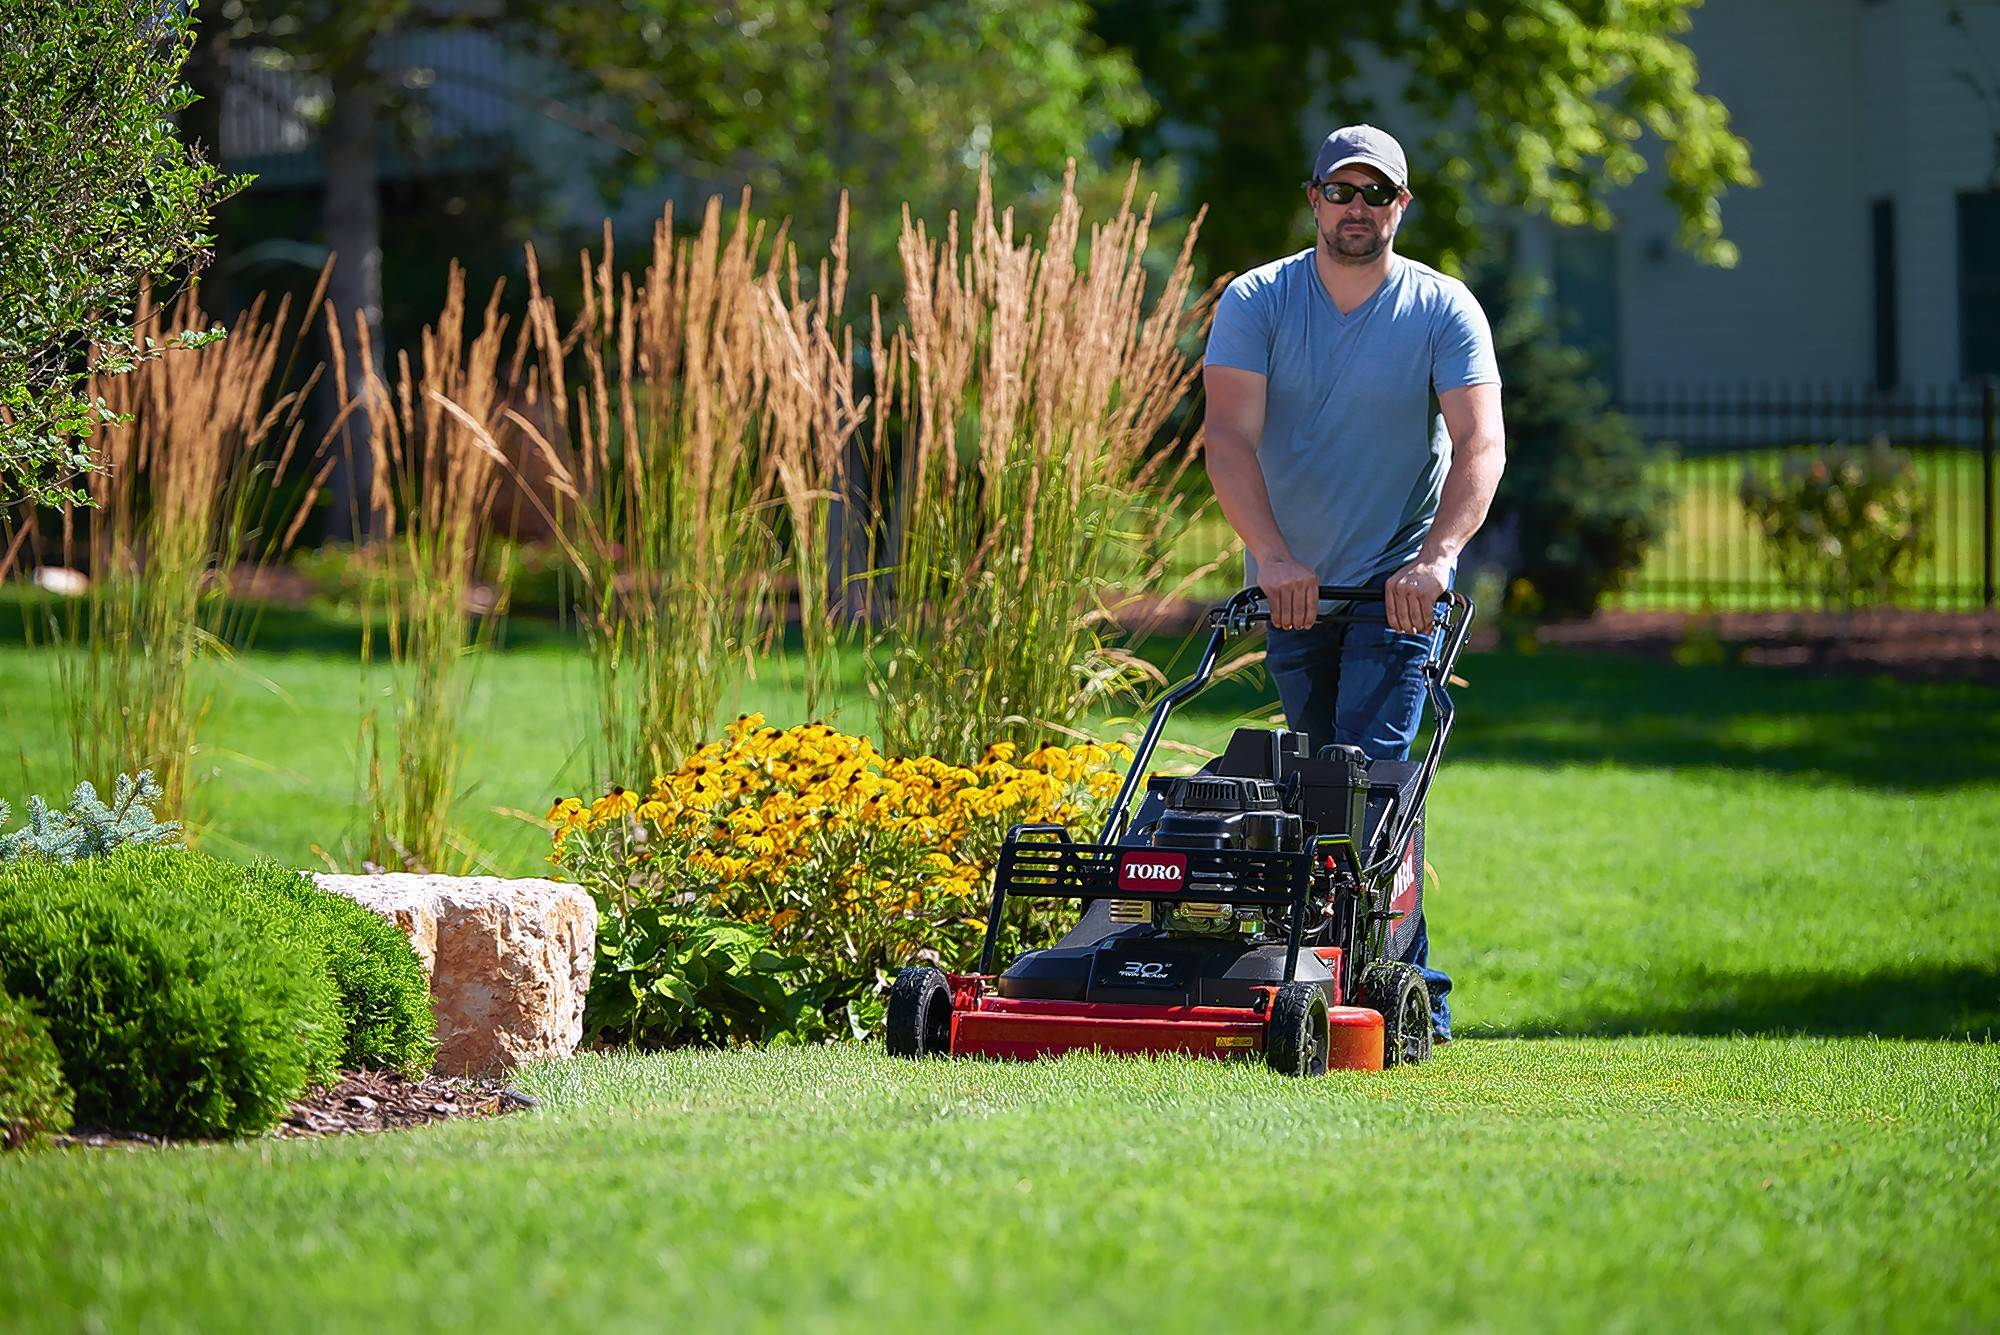 Toro's self-propelled mower offer easier maneuverability and are up to 30-inches wide.